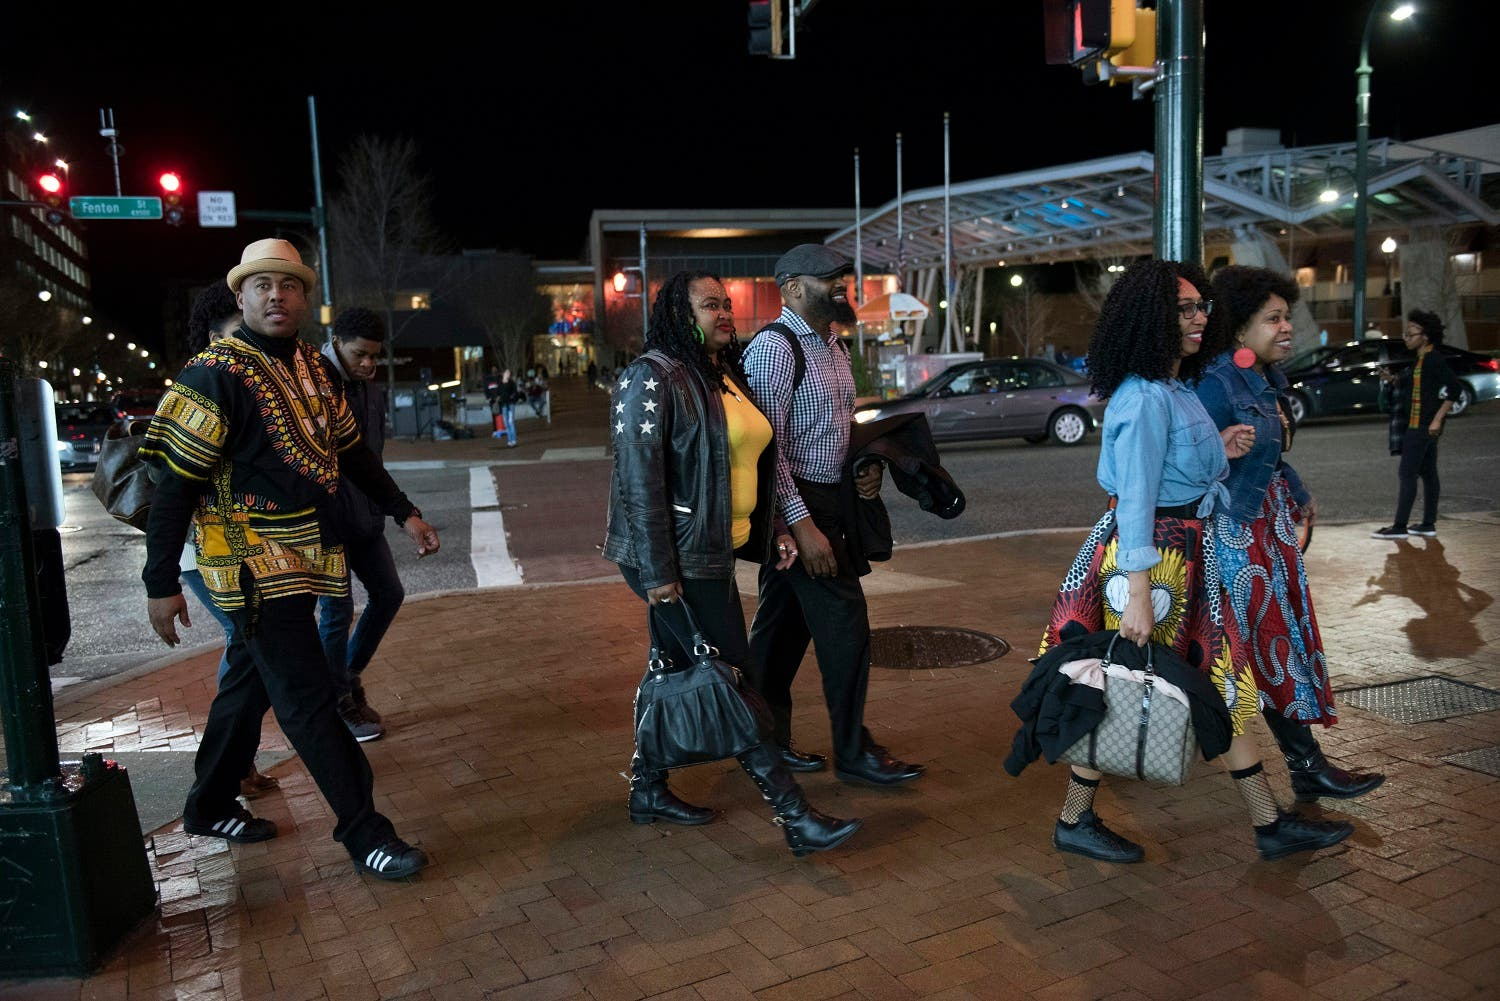 Emanuel Lawton (left), and his family dressed in Wakanda-inspired attire arrive to see Black Panther in Silver Spring, Md., on Feb. 15, 2018. (AP)